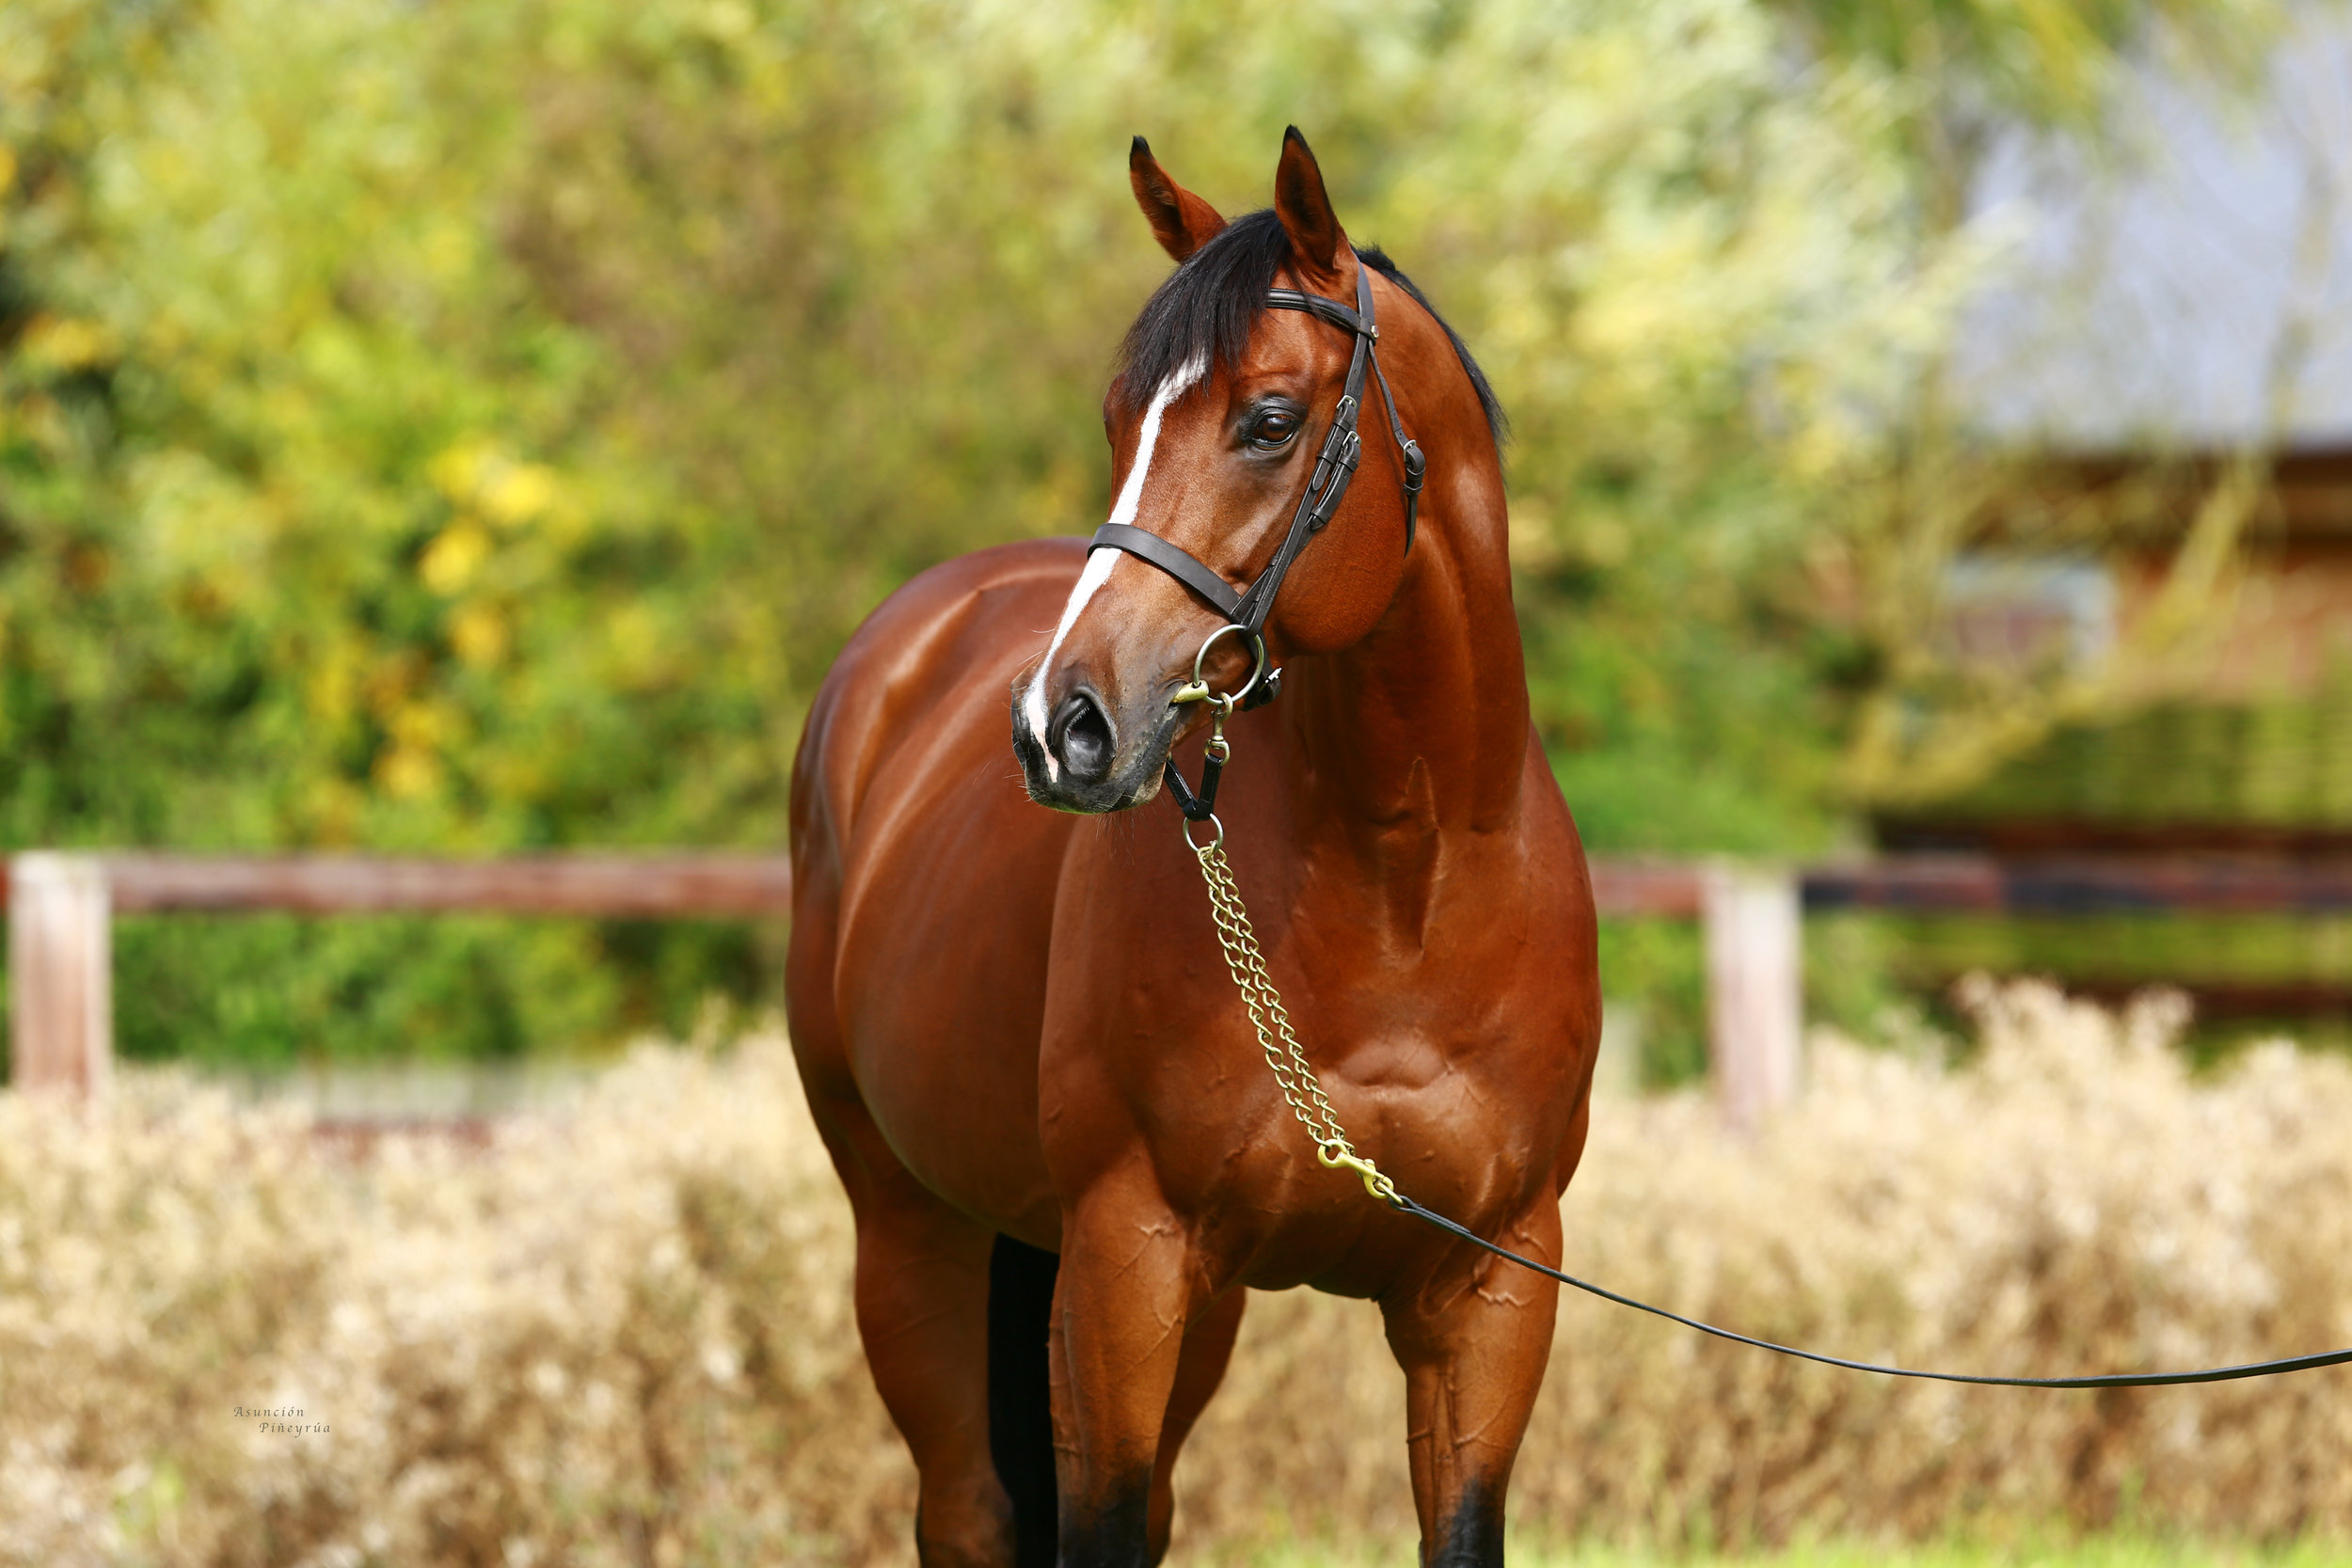 - OASIS DREAM ex INFALLIBLE 2010Standing at Hedgeholme Stud, Co. Durham - £1,750 (Travel allowance of up to £400 when paying full nomination fees)